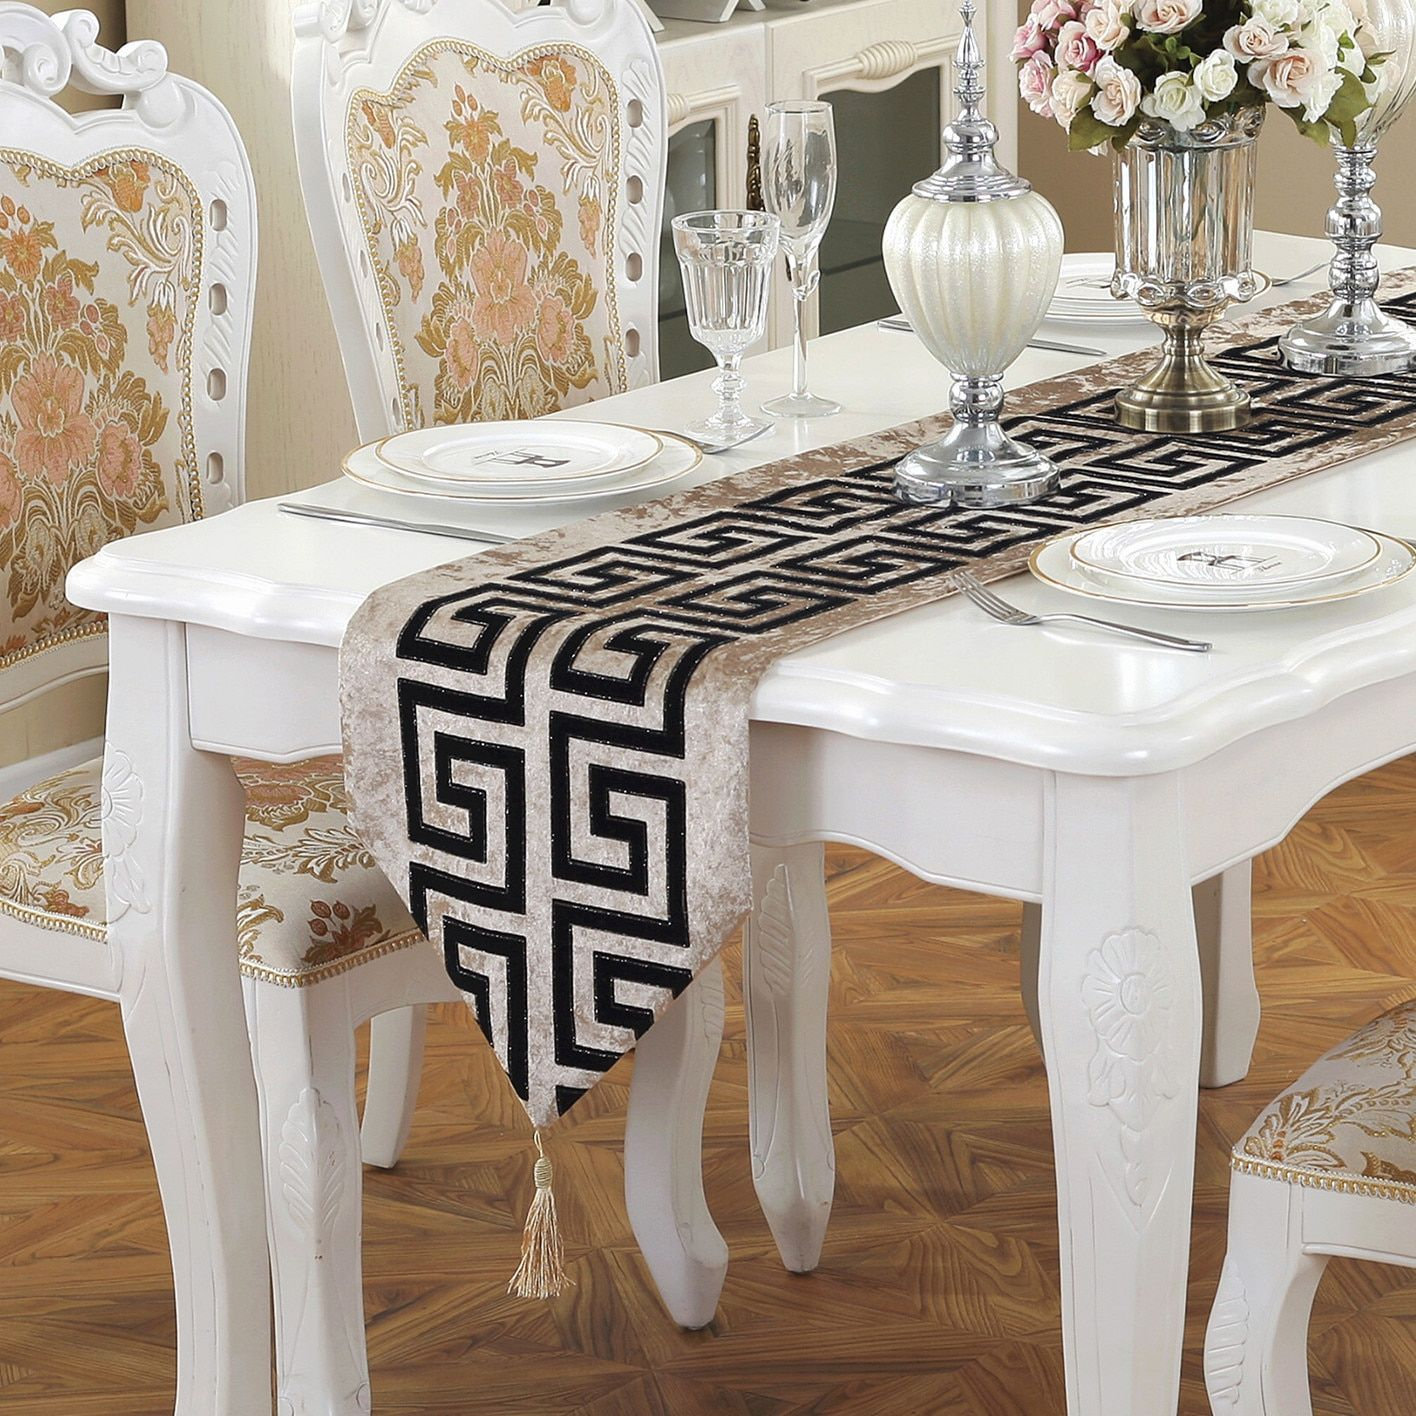 New Chinese Modern Simple Style Table Runner Classical Retro Black And White Red Tea Table Cloth Fashion Modern Table Runners Table Cloth Modern Wedding Decor [ 1416 x 1416 Pixel ]